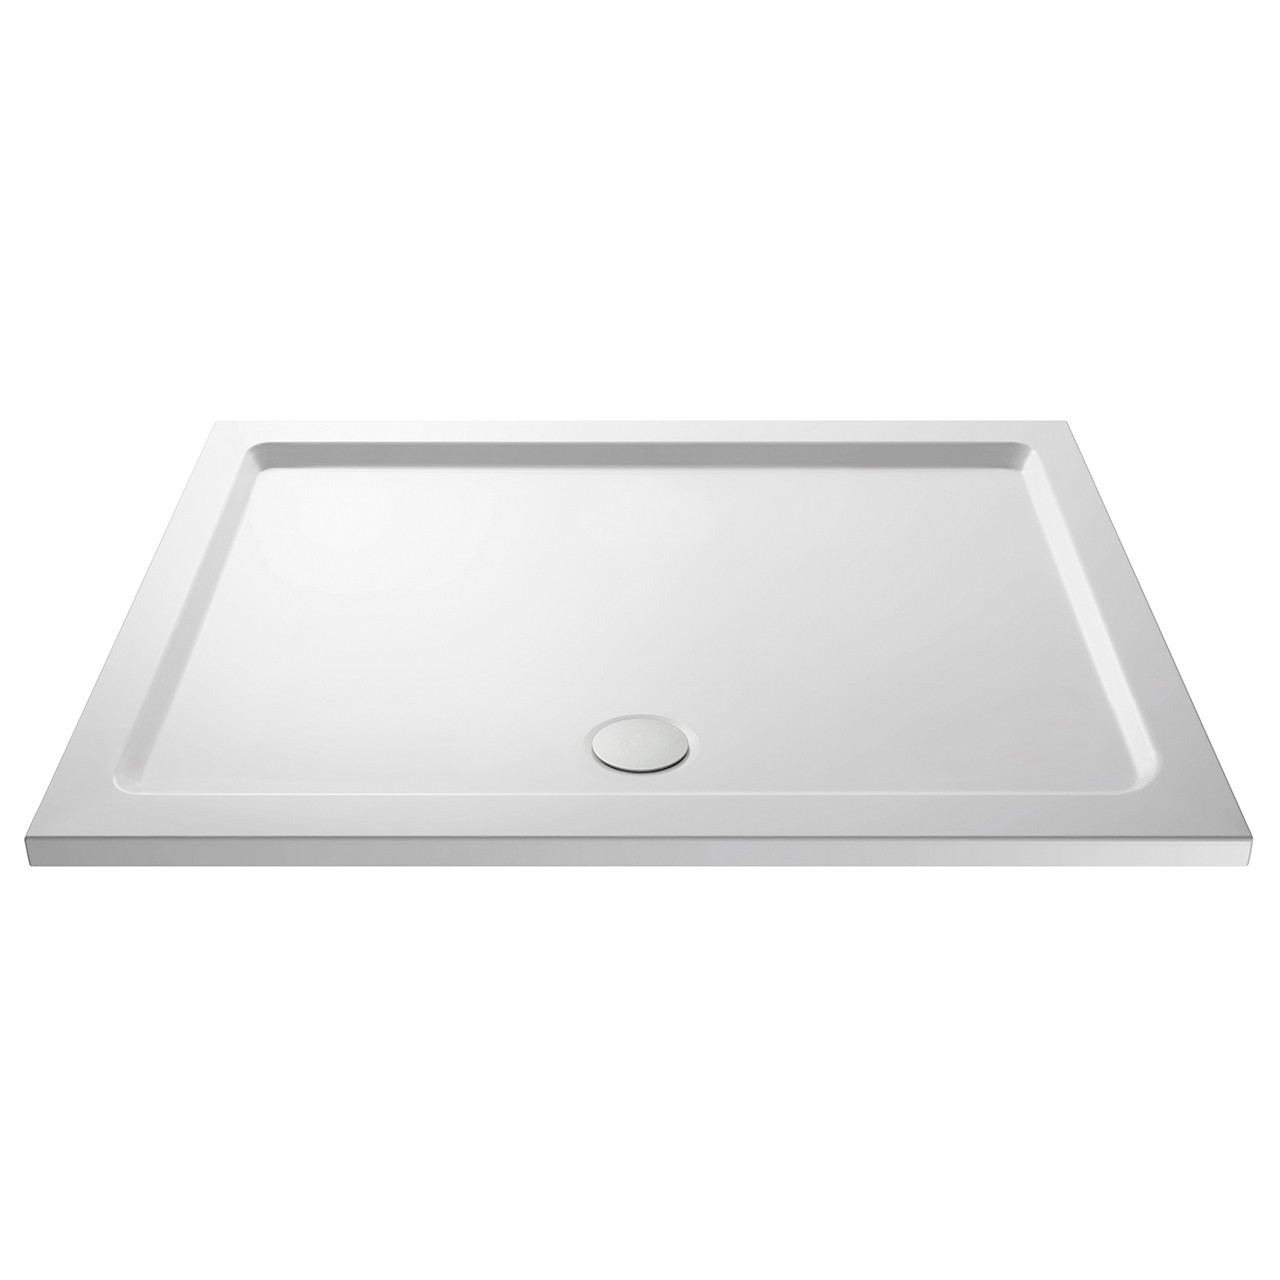 Premiere Pearlstone 1700mm x 800mm x 40mm Rectangular Shower Tray with Centre Waste - NTP063